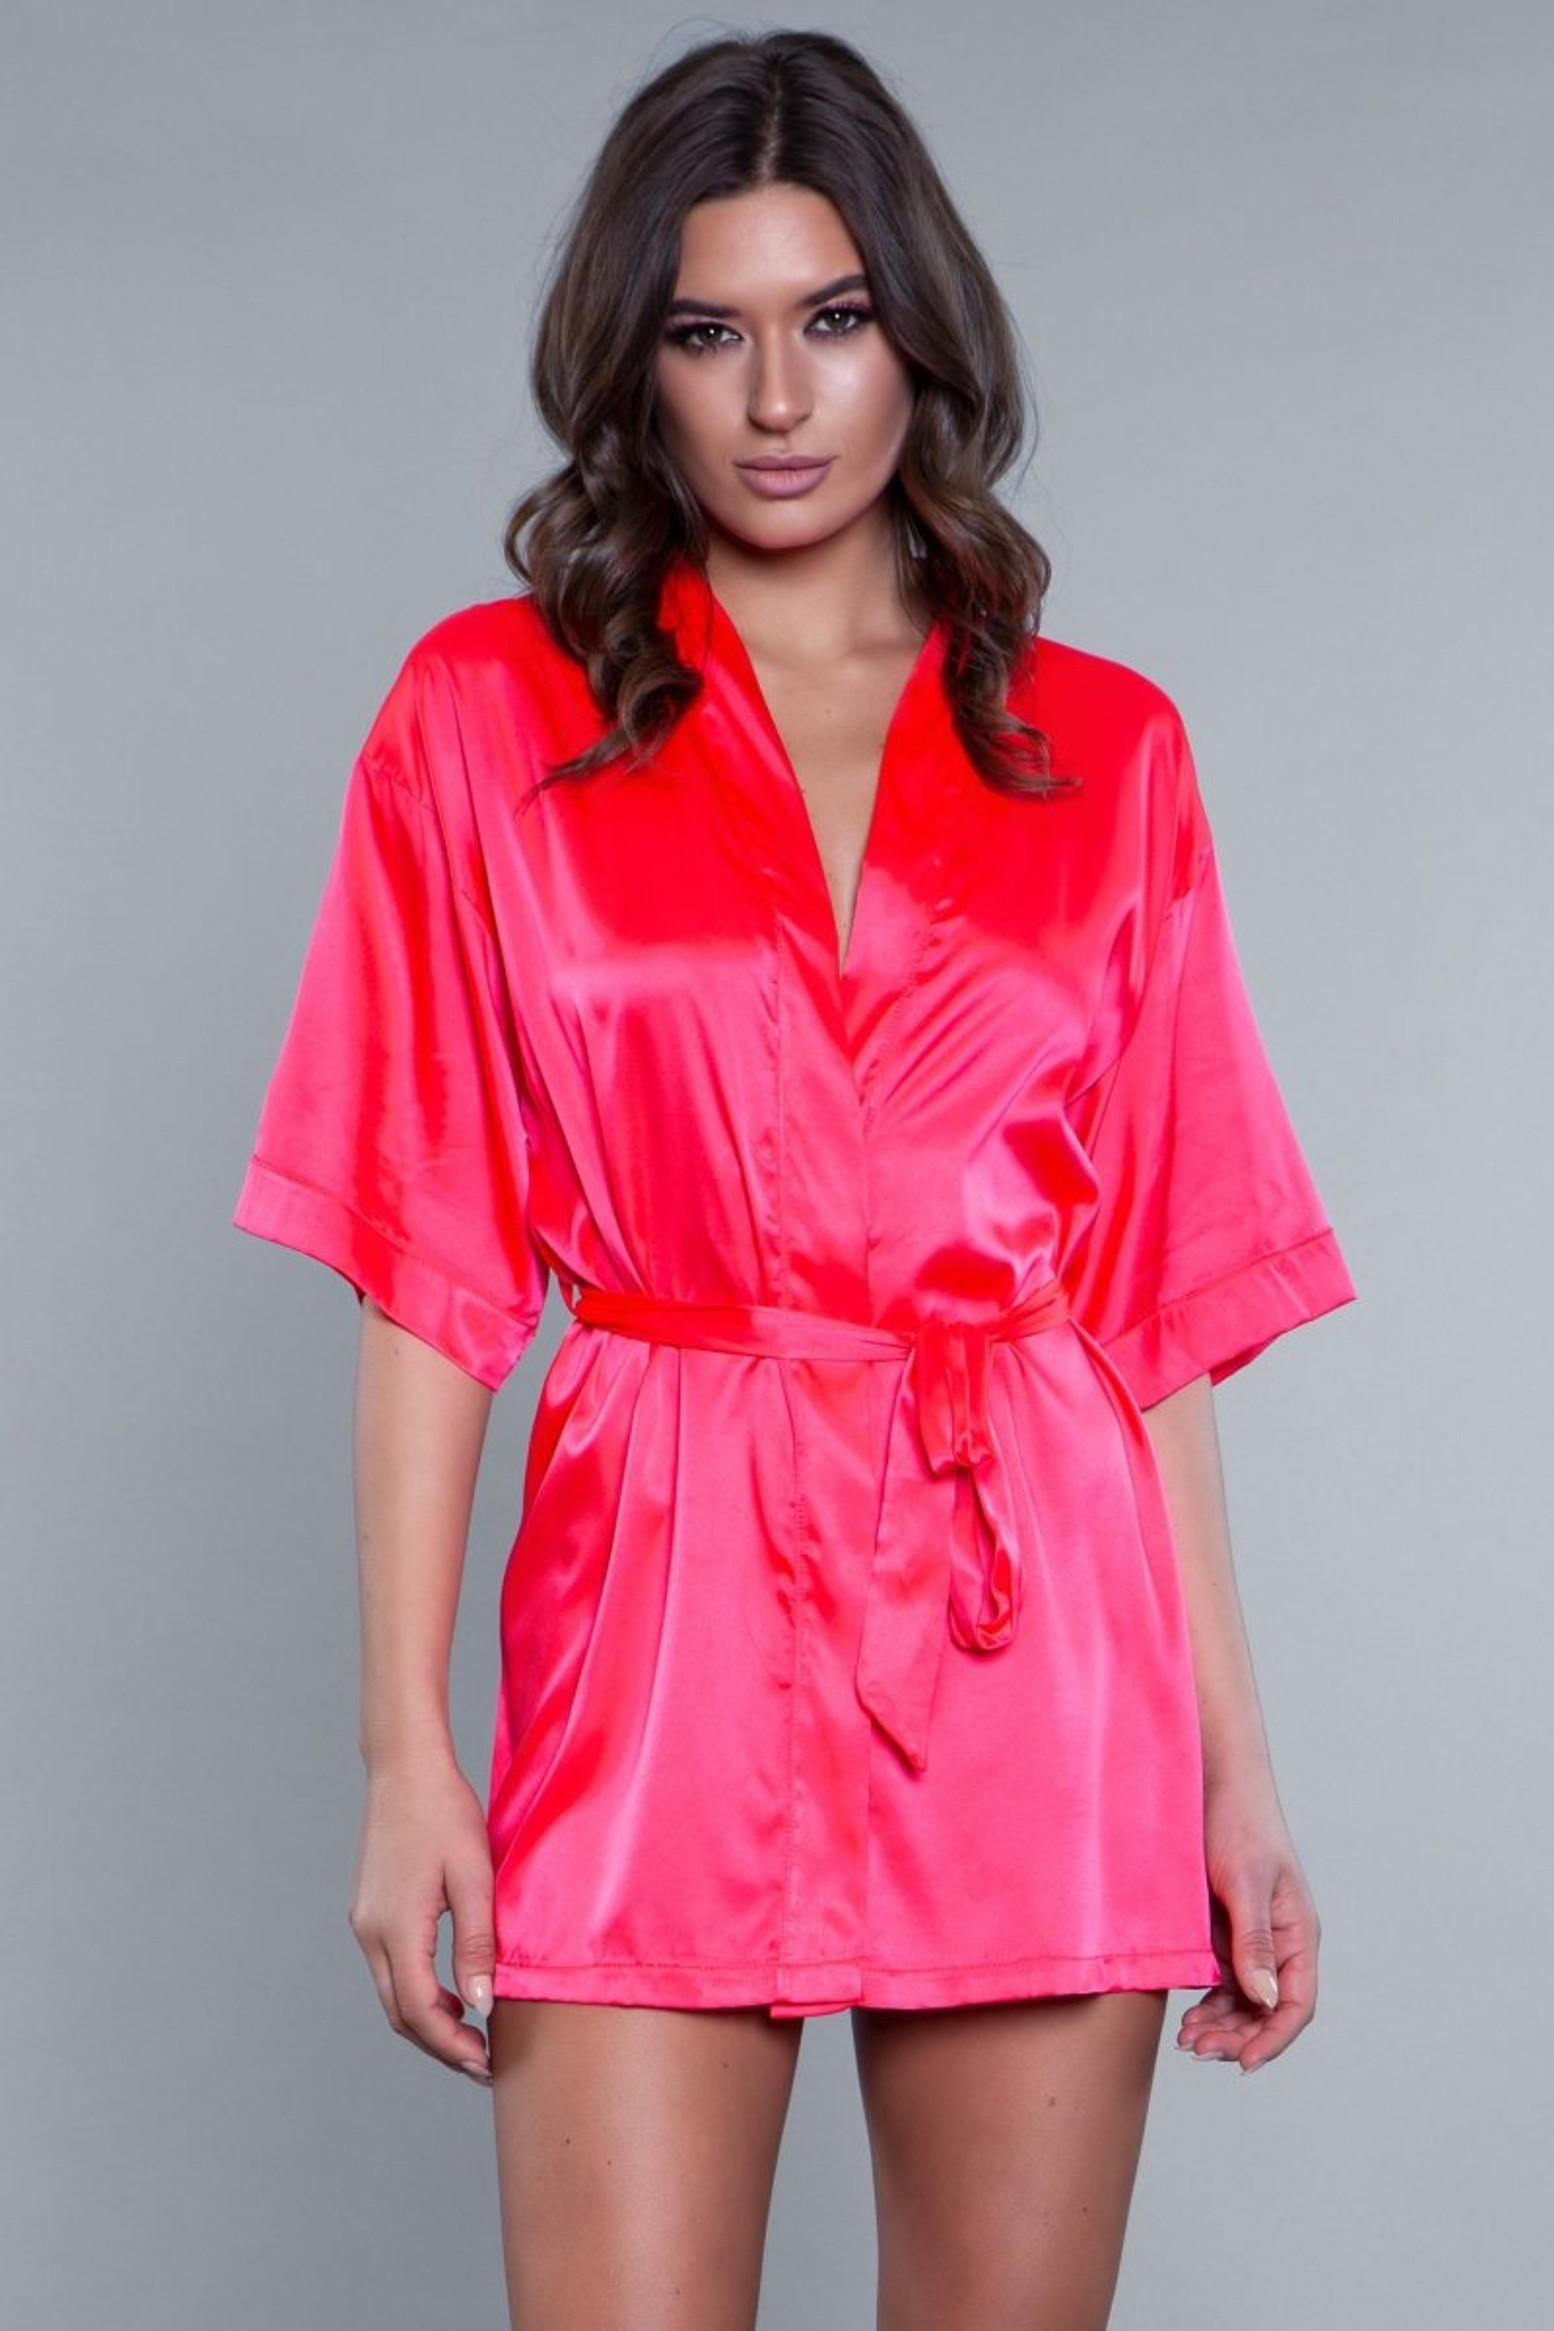 1947 Home Alone Robe - Hot Pink